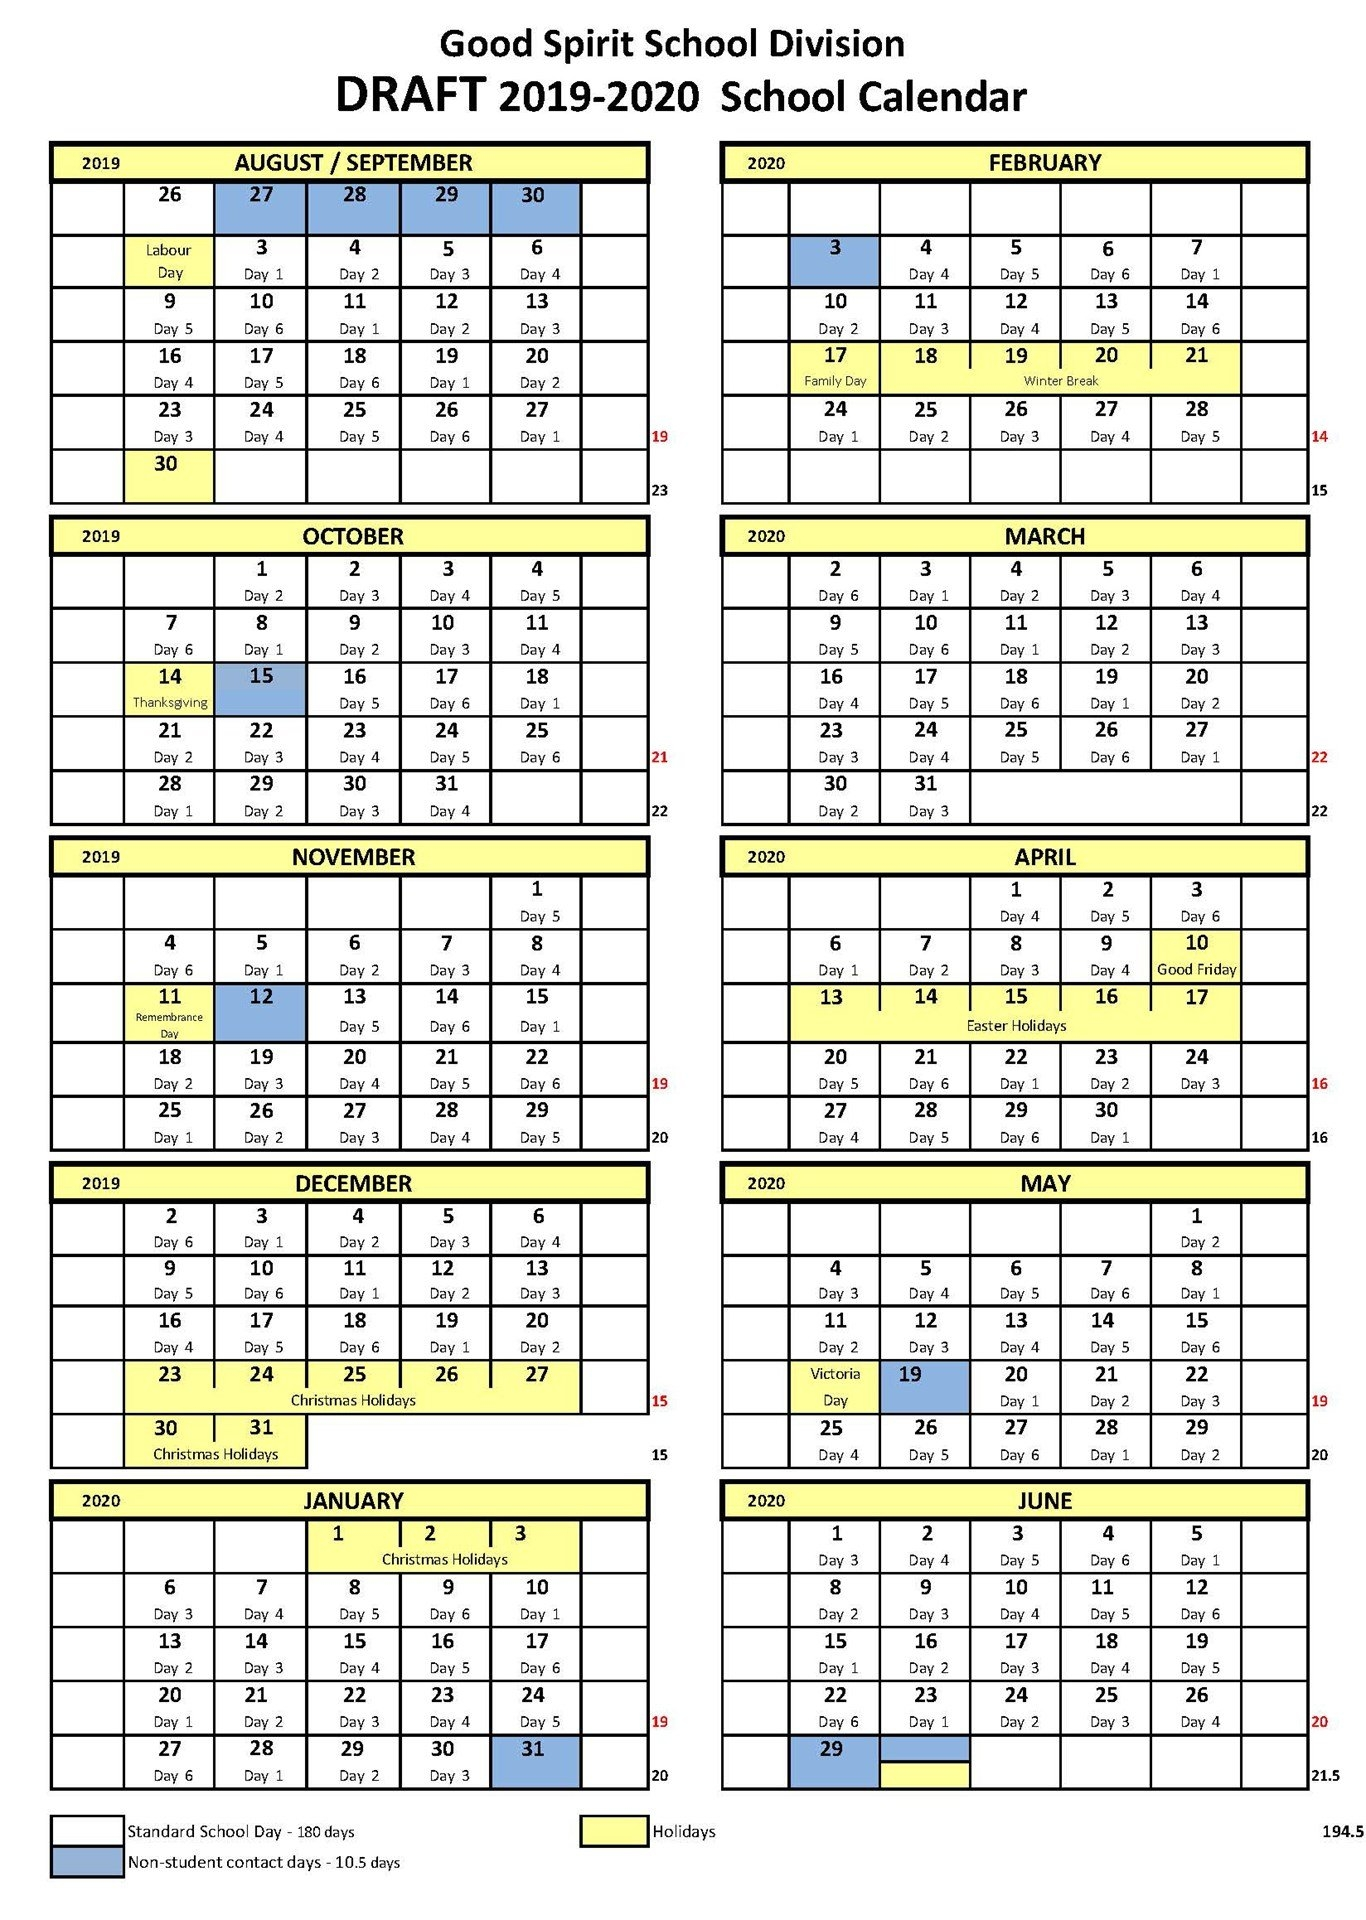 School Year Calendar - Good Spirit School Division 204 Ccsd Calendar 2019-20